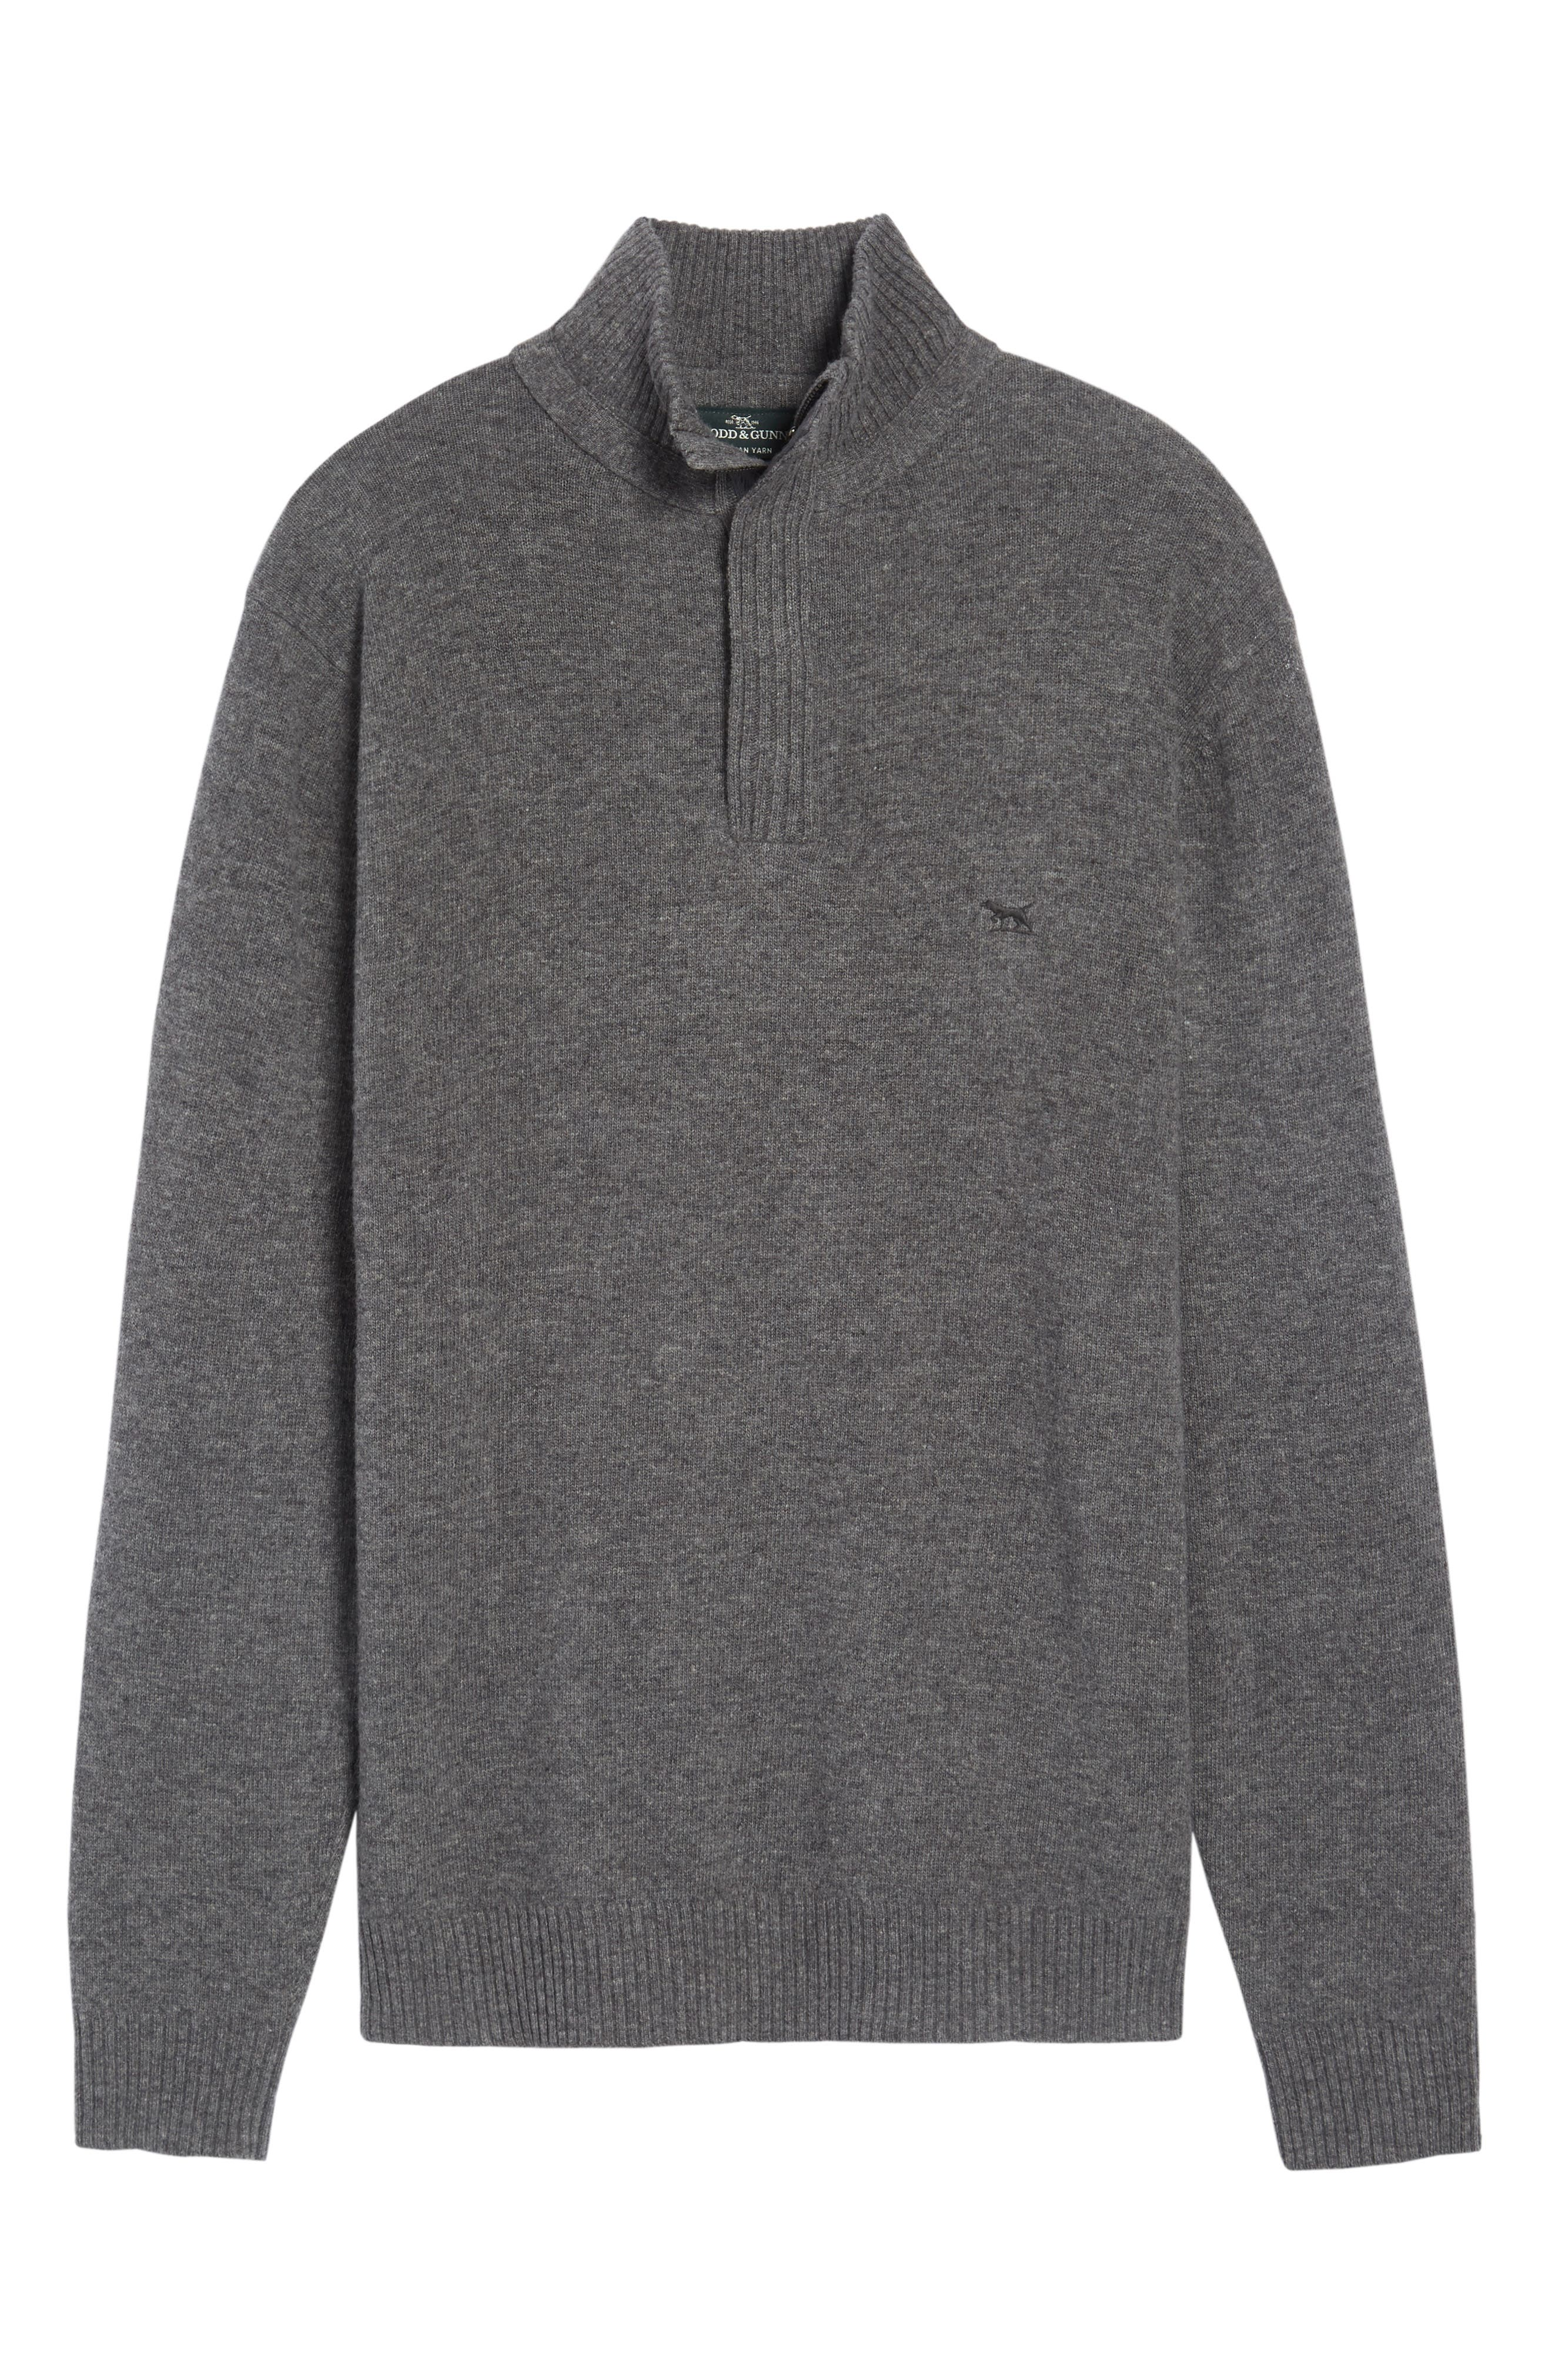 Cape Rodney Lambswool Pullover,                             Alternate thumbnail 6, color,                             CHARCOAL